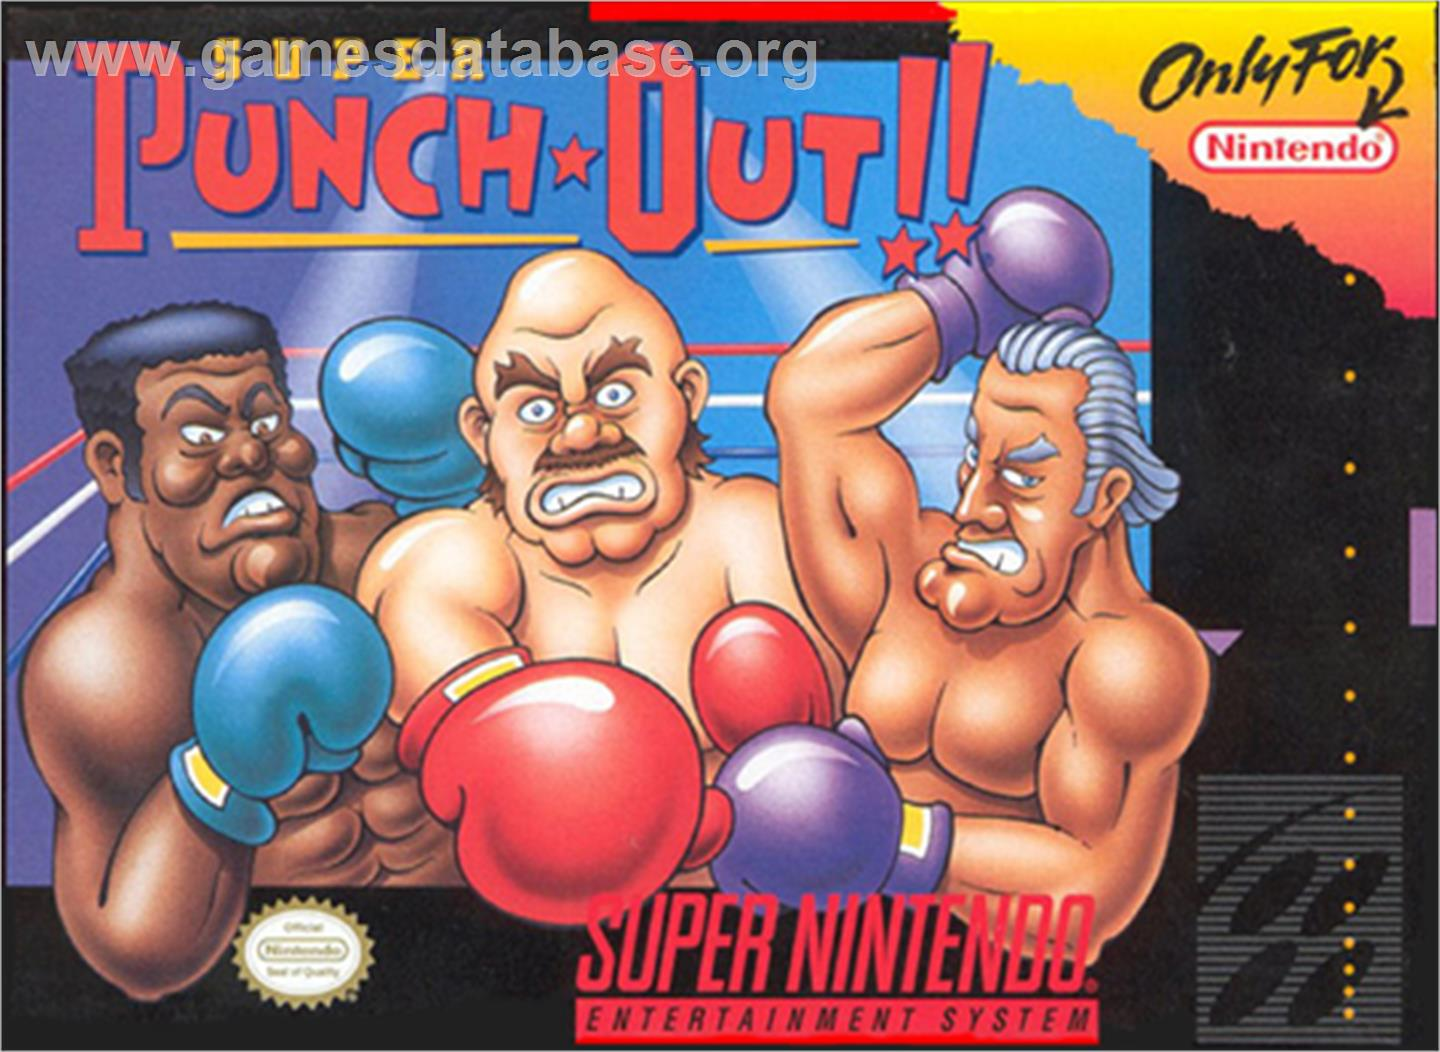 Super Punch-Out!! - Nintendo SNES - Artwork - Box